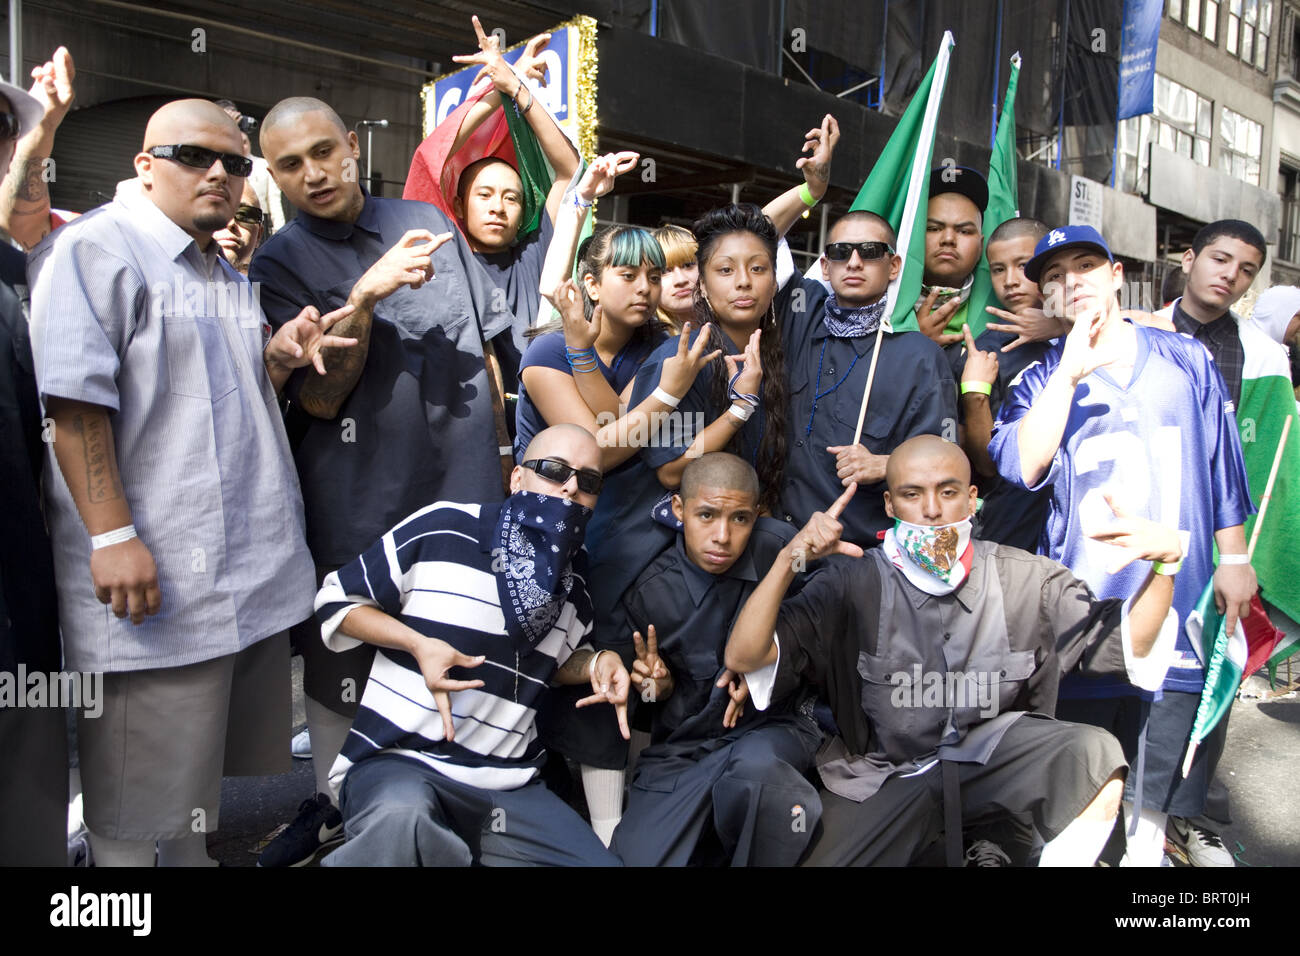 Members Of The Azteca Gang Celebrate The Mexican Independence Stock Photo